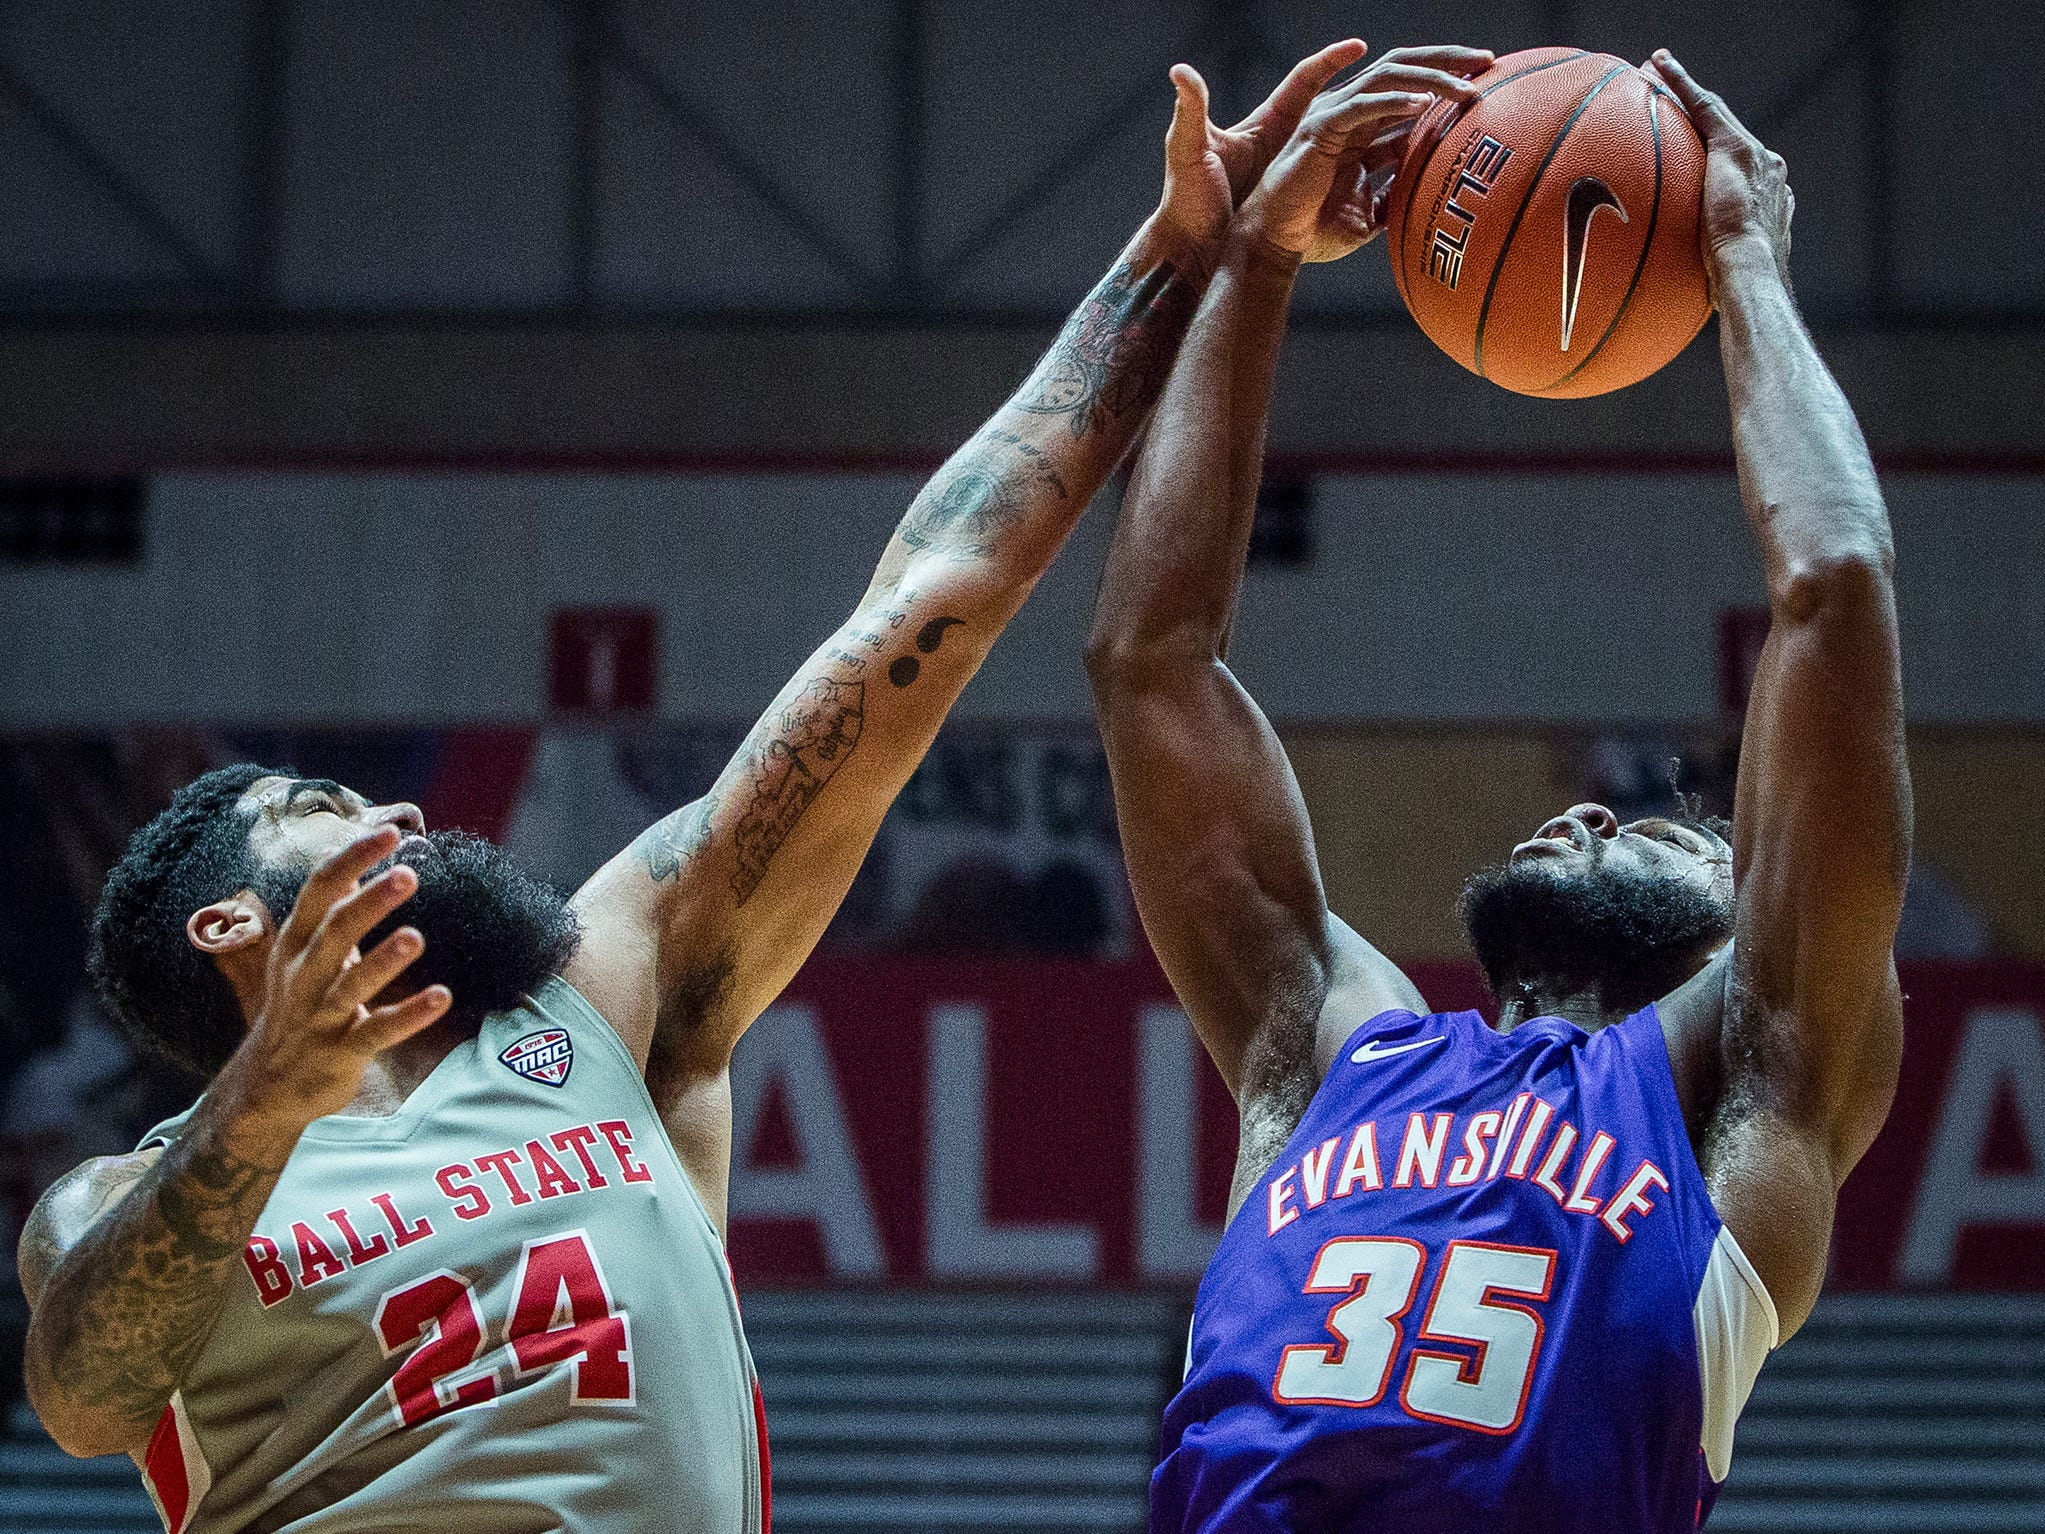 Evansville's John Hall goes up for a shot with Ball State's Trey Moses defending during their game at Worthen Arena Saturday, Nov. 24, 2018.